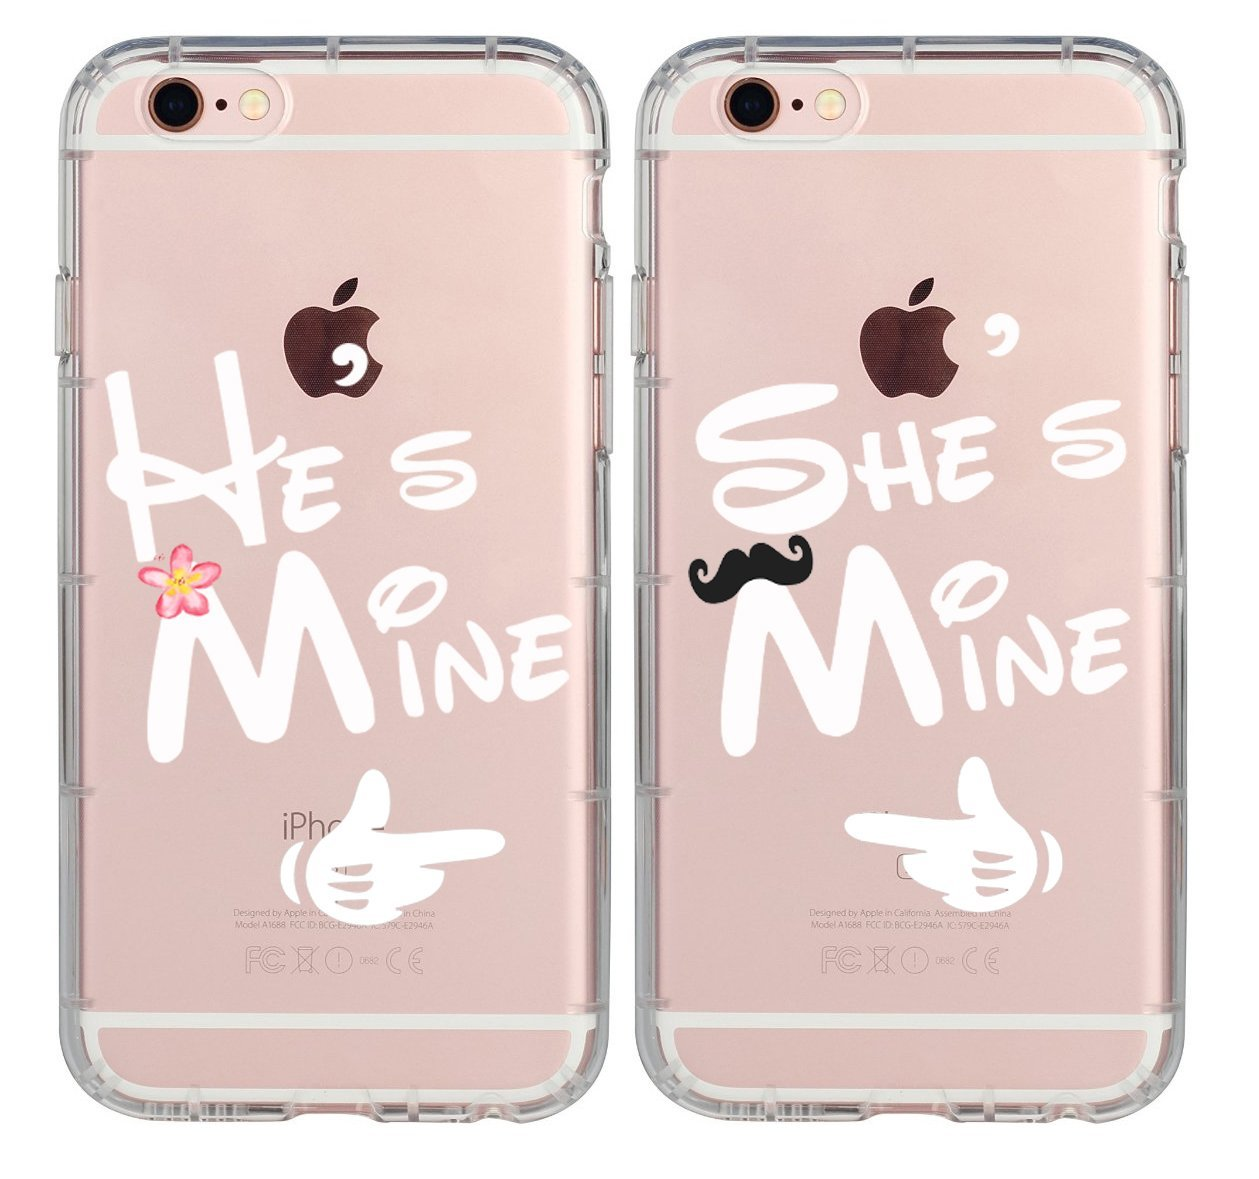 amazon com couple cases for her,cute couples things for girlfriendcouple cases for her,cute couples things for girlfriend boyfriend,he\u0027s mine she\u0027s mine king queen couple matching pink funny soft clear love forever quotes